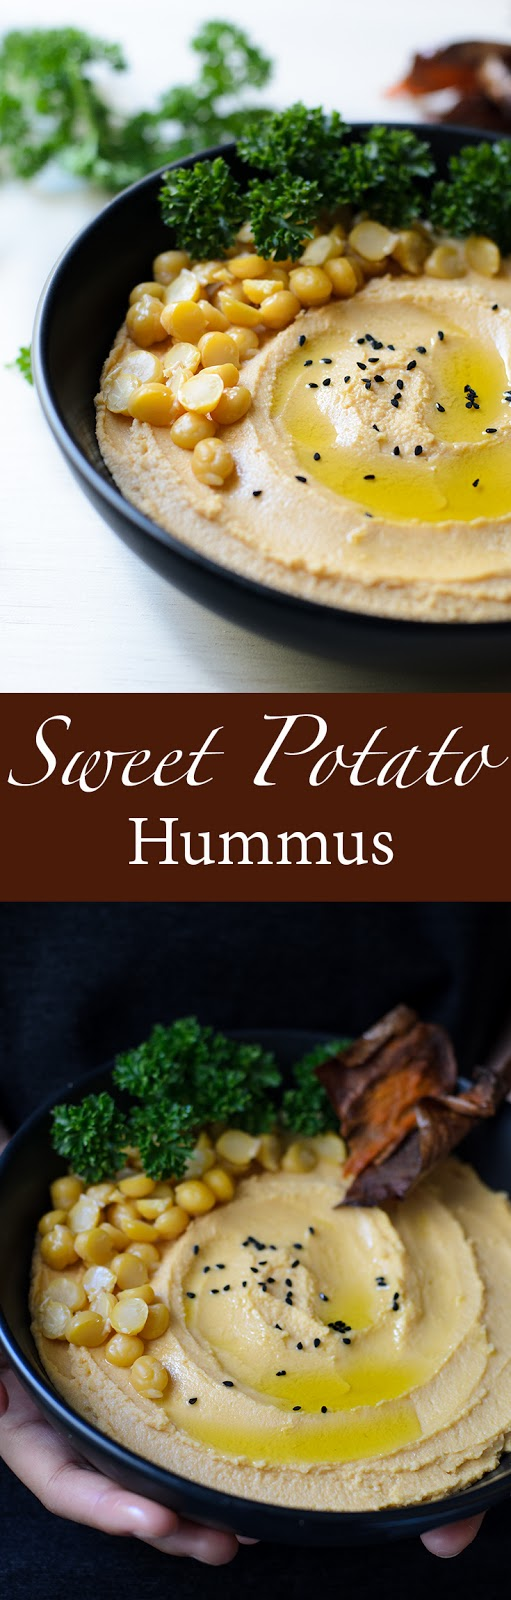 Easy Hummus recipe made from fresh ingredients.  Hummus and mashed sweet potato, excellent with crisp sweet potato skin. Hummus is a Levantine and Egyptian food dip or spread made from cooked, mashed chickpeas or other beans, blended with tahini, olive oil, lemon juice, salt and garlic.